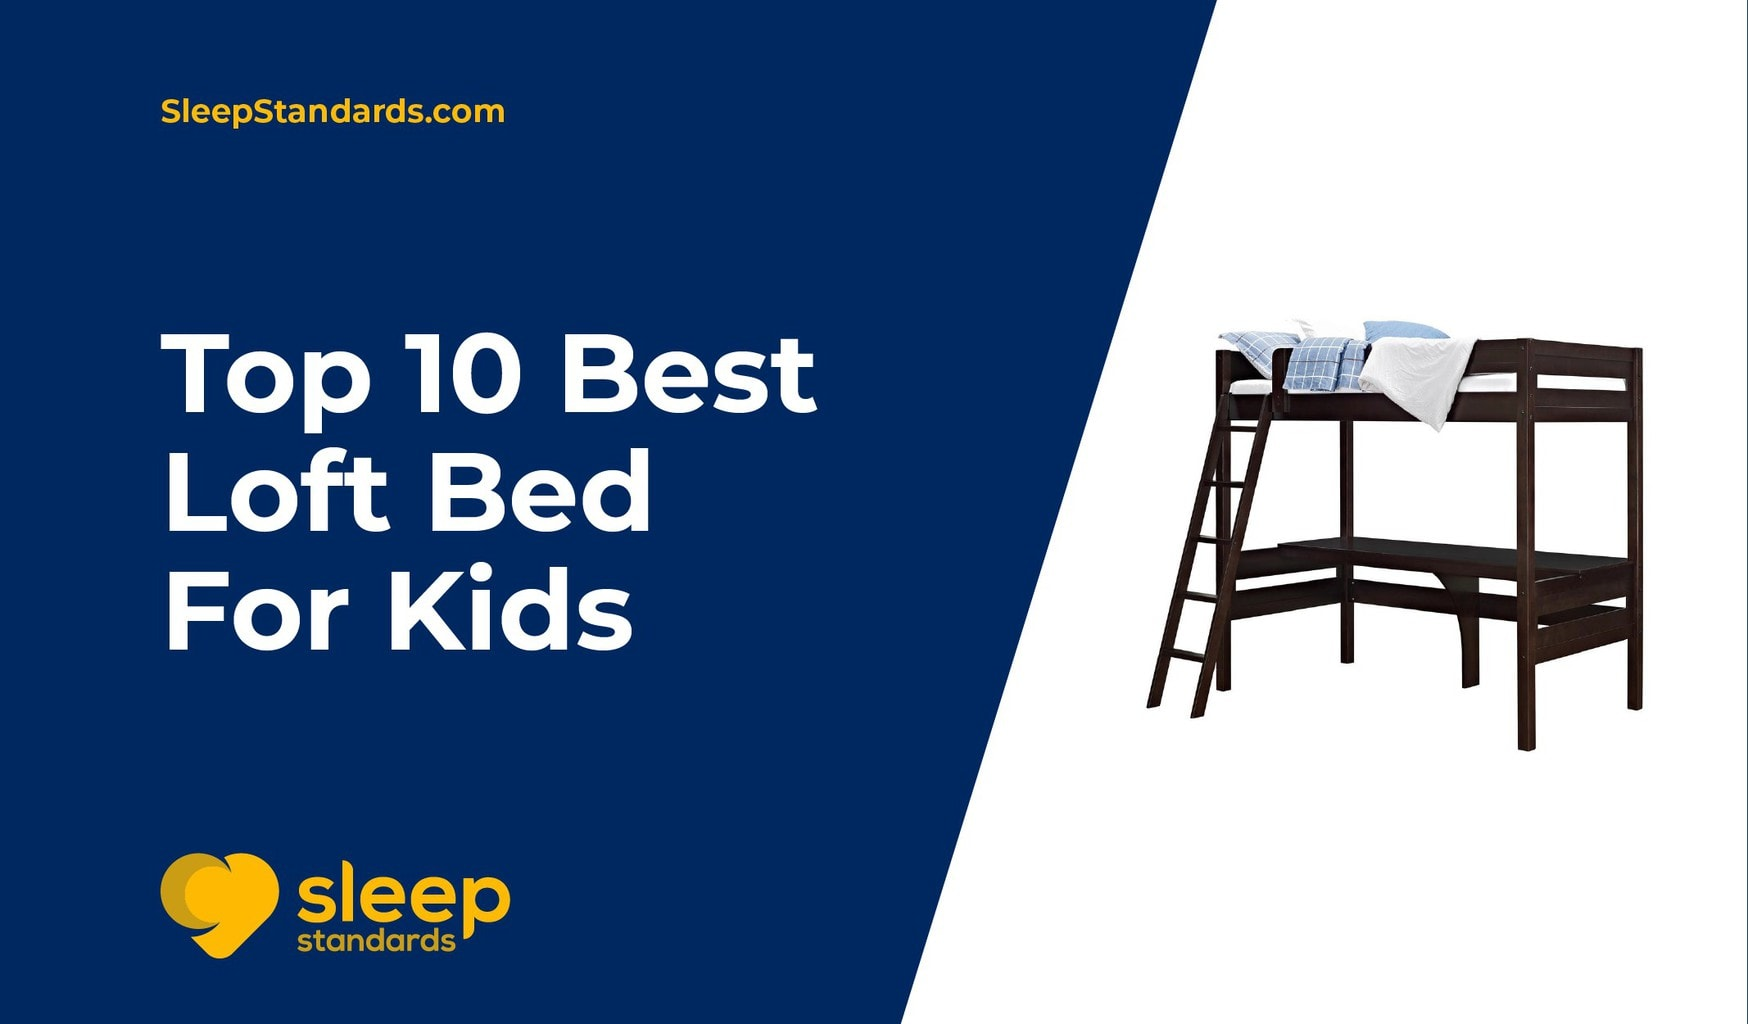 Best Loft Bed - Sleep Standards